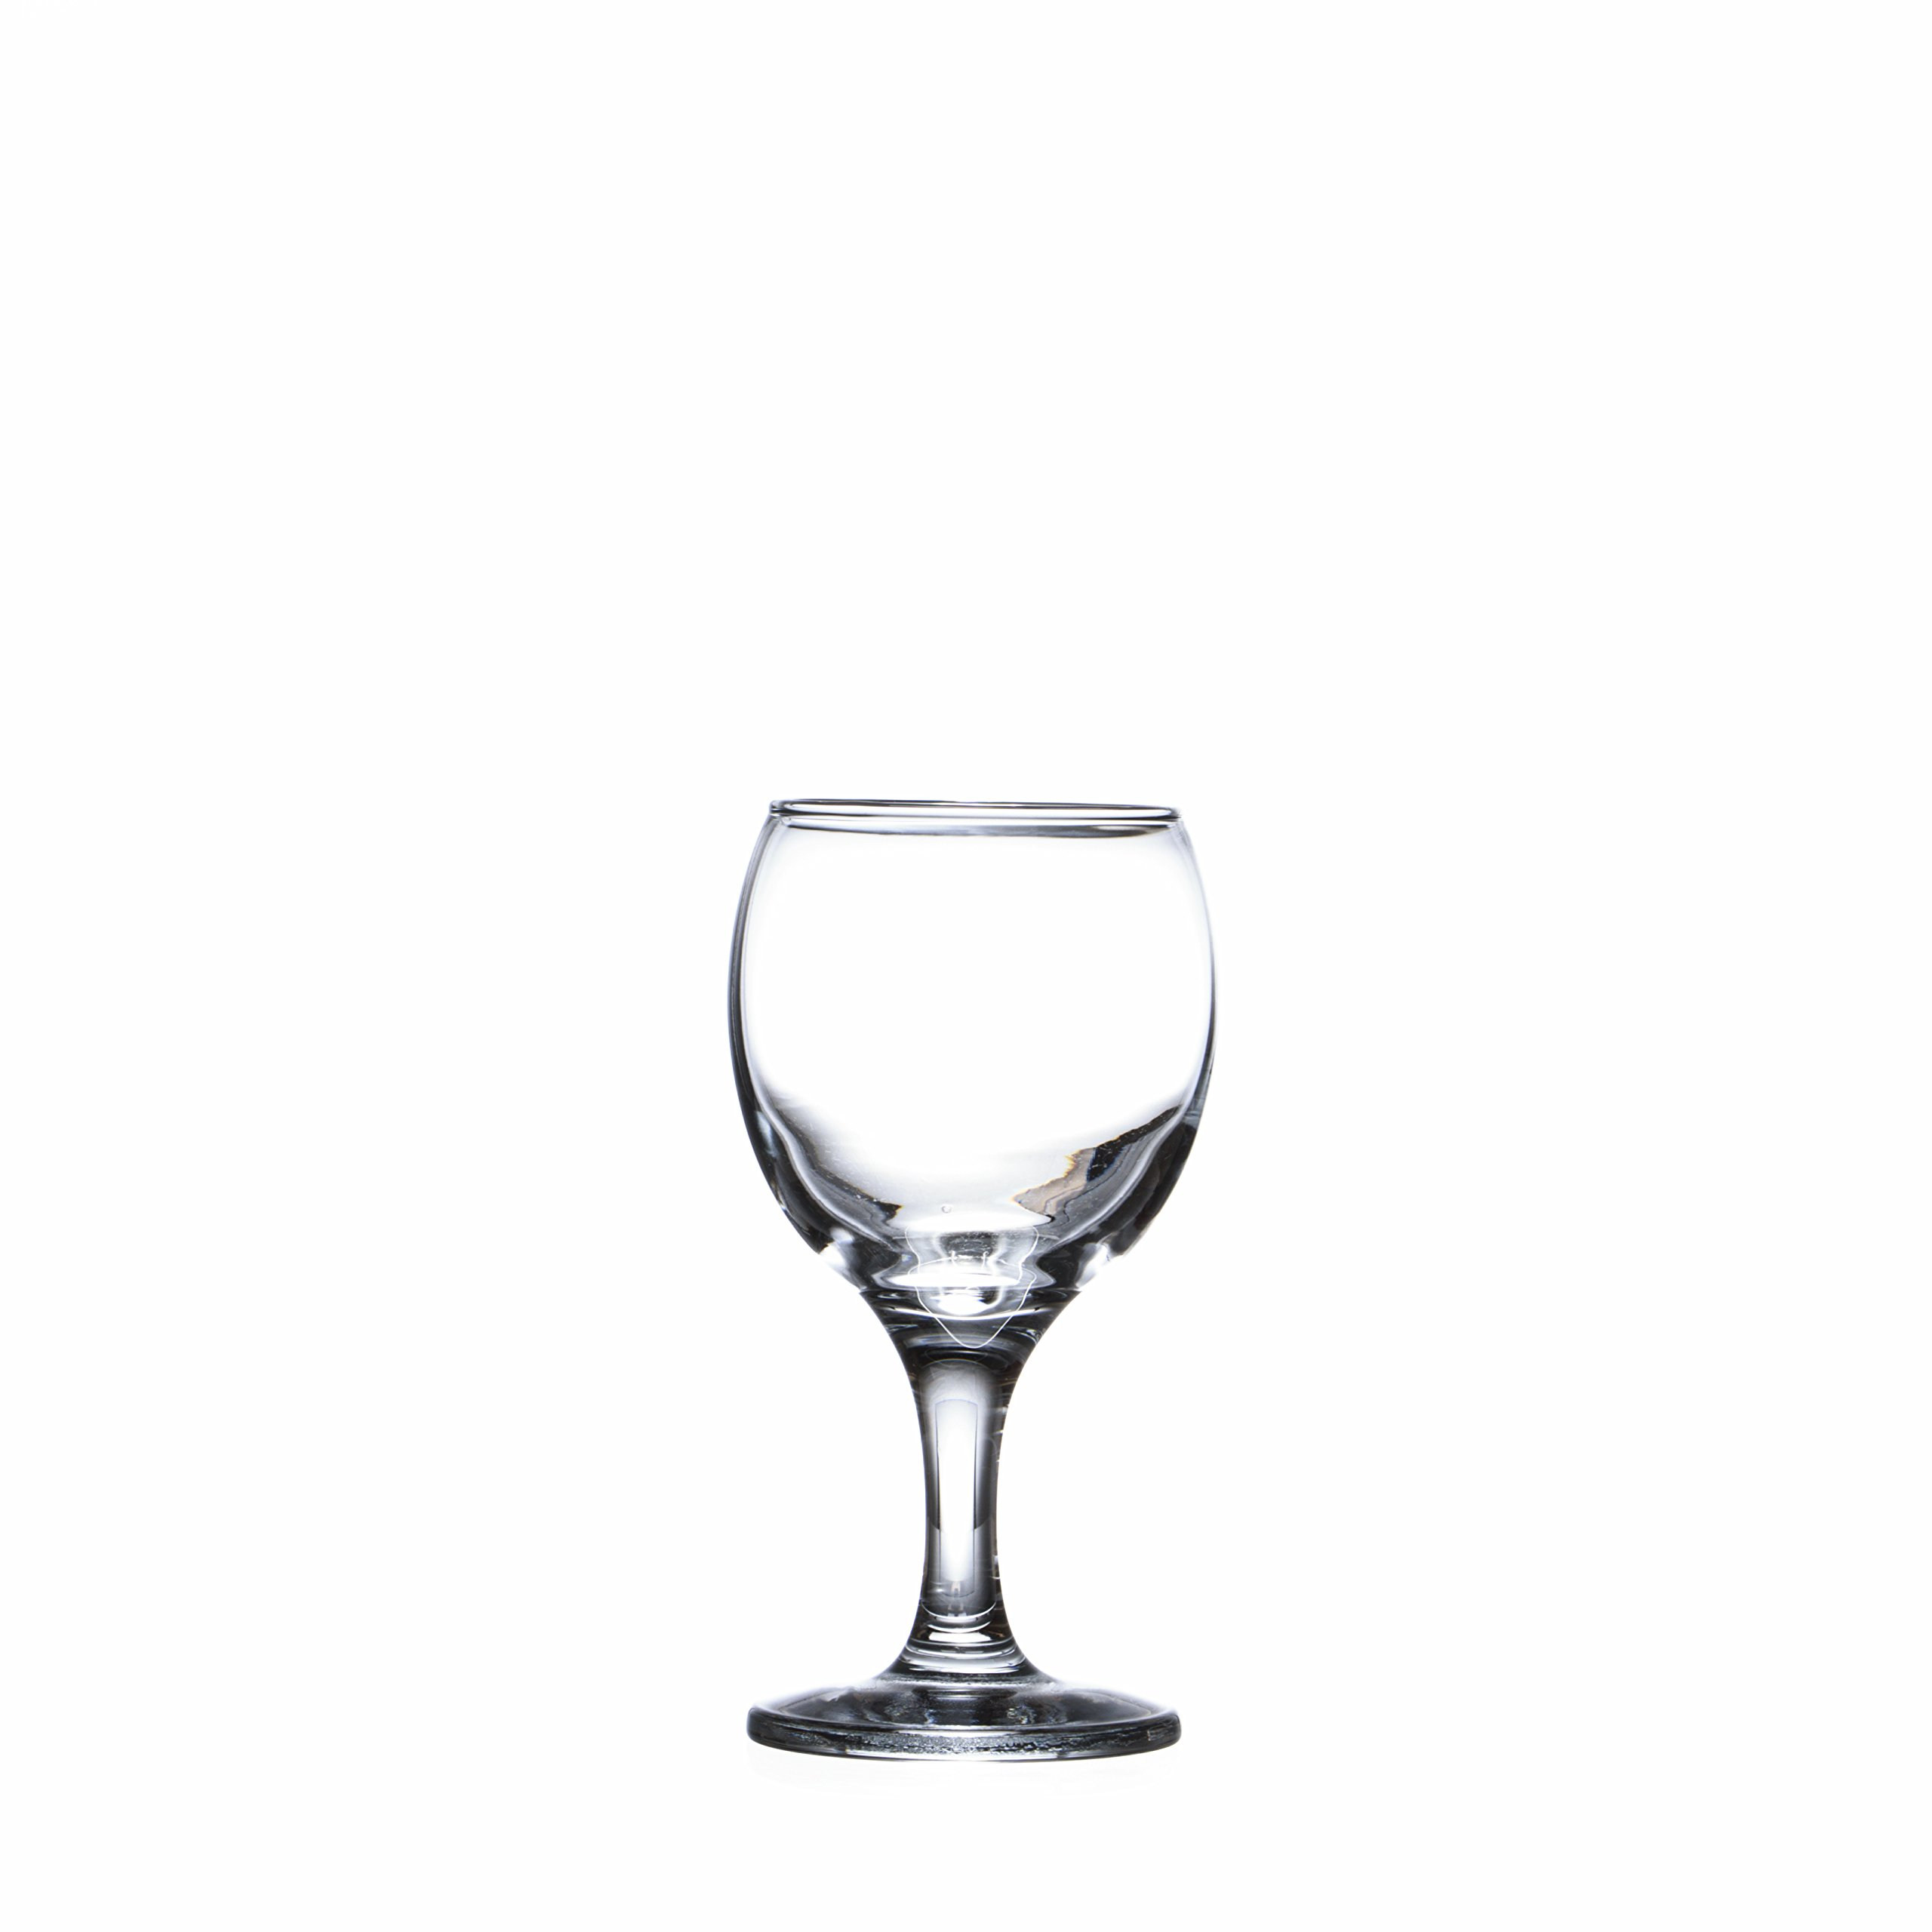 BISTRO 12-piece Wine Glasses Set (in 3 size), White, Red and Liquor Wine, Restaurant&Bar Quality, Durable Tempered Glass, Heavy Base, t.m. Pasabache (7 1/2 oz) by Pasabache (Image #5)